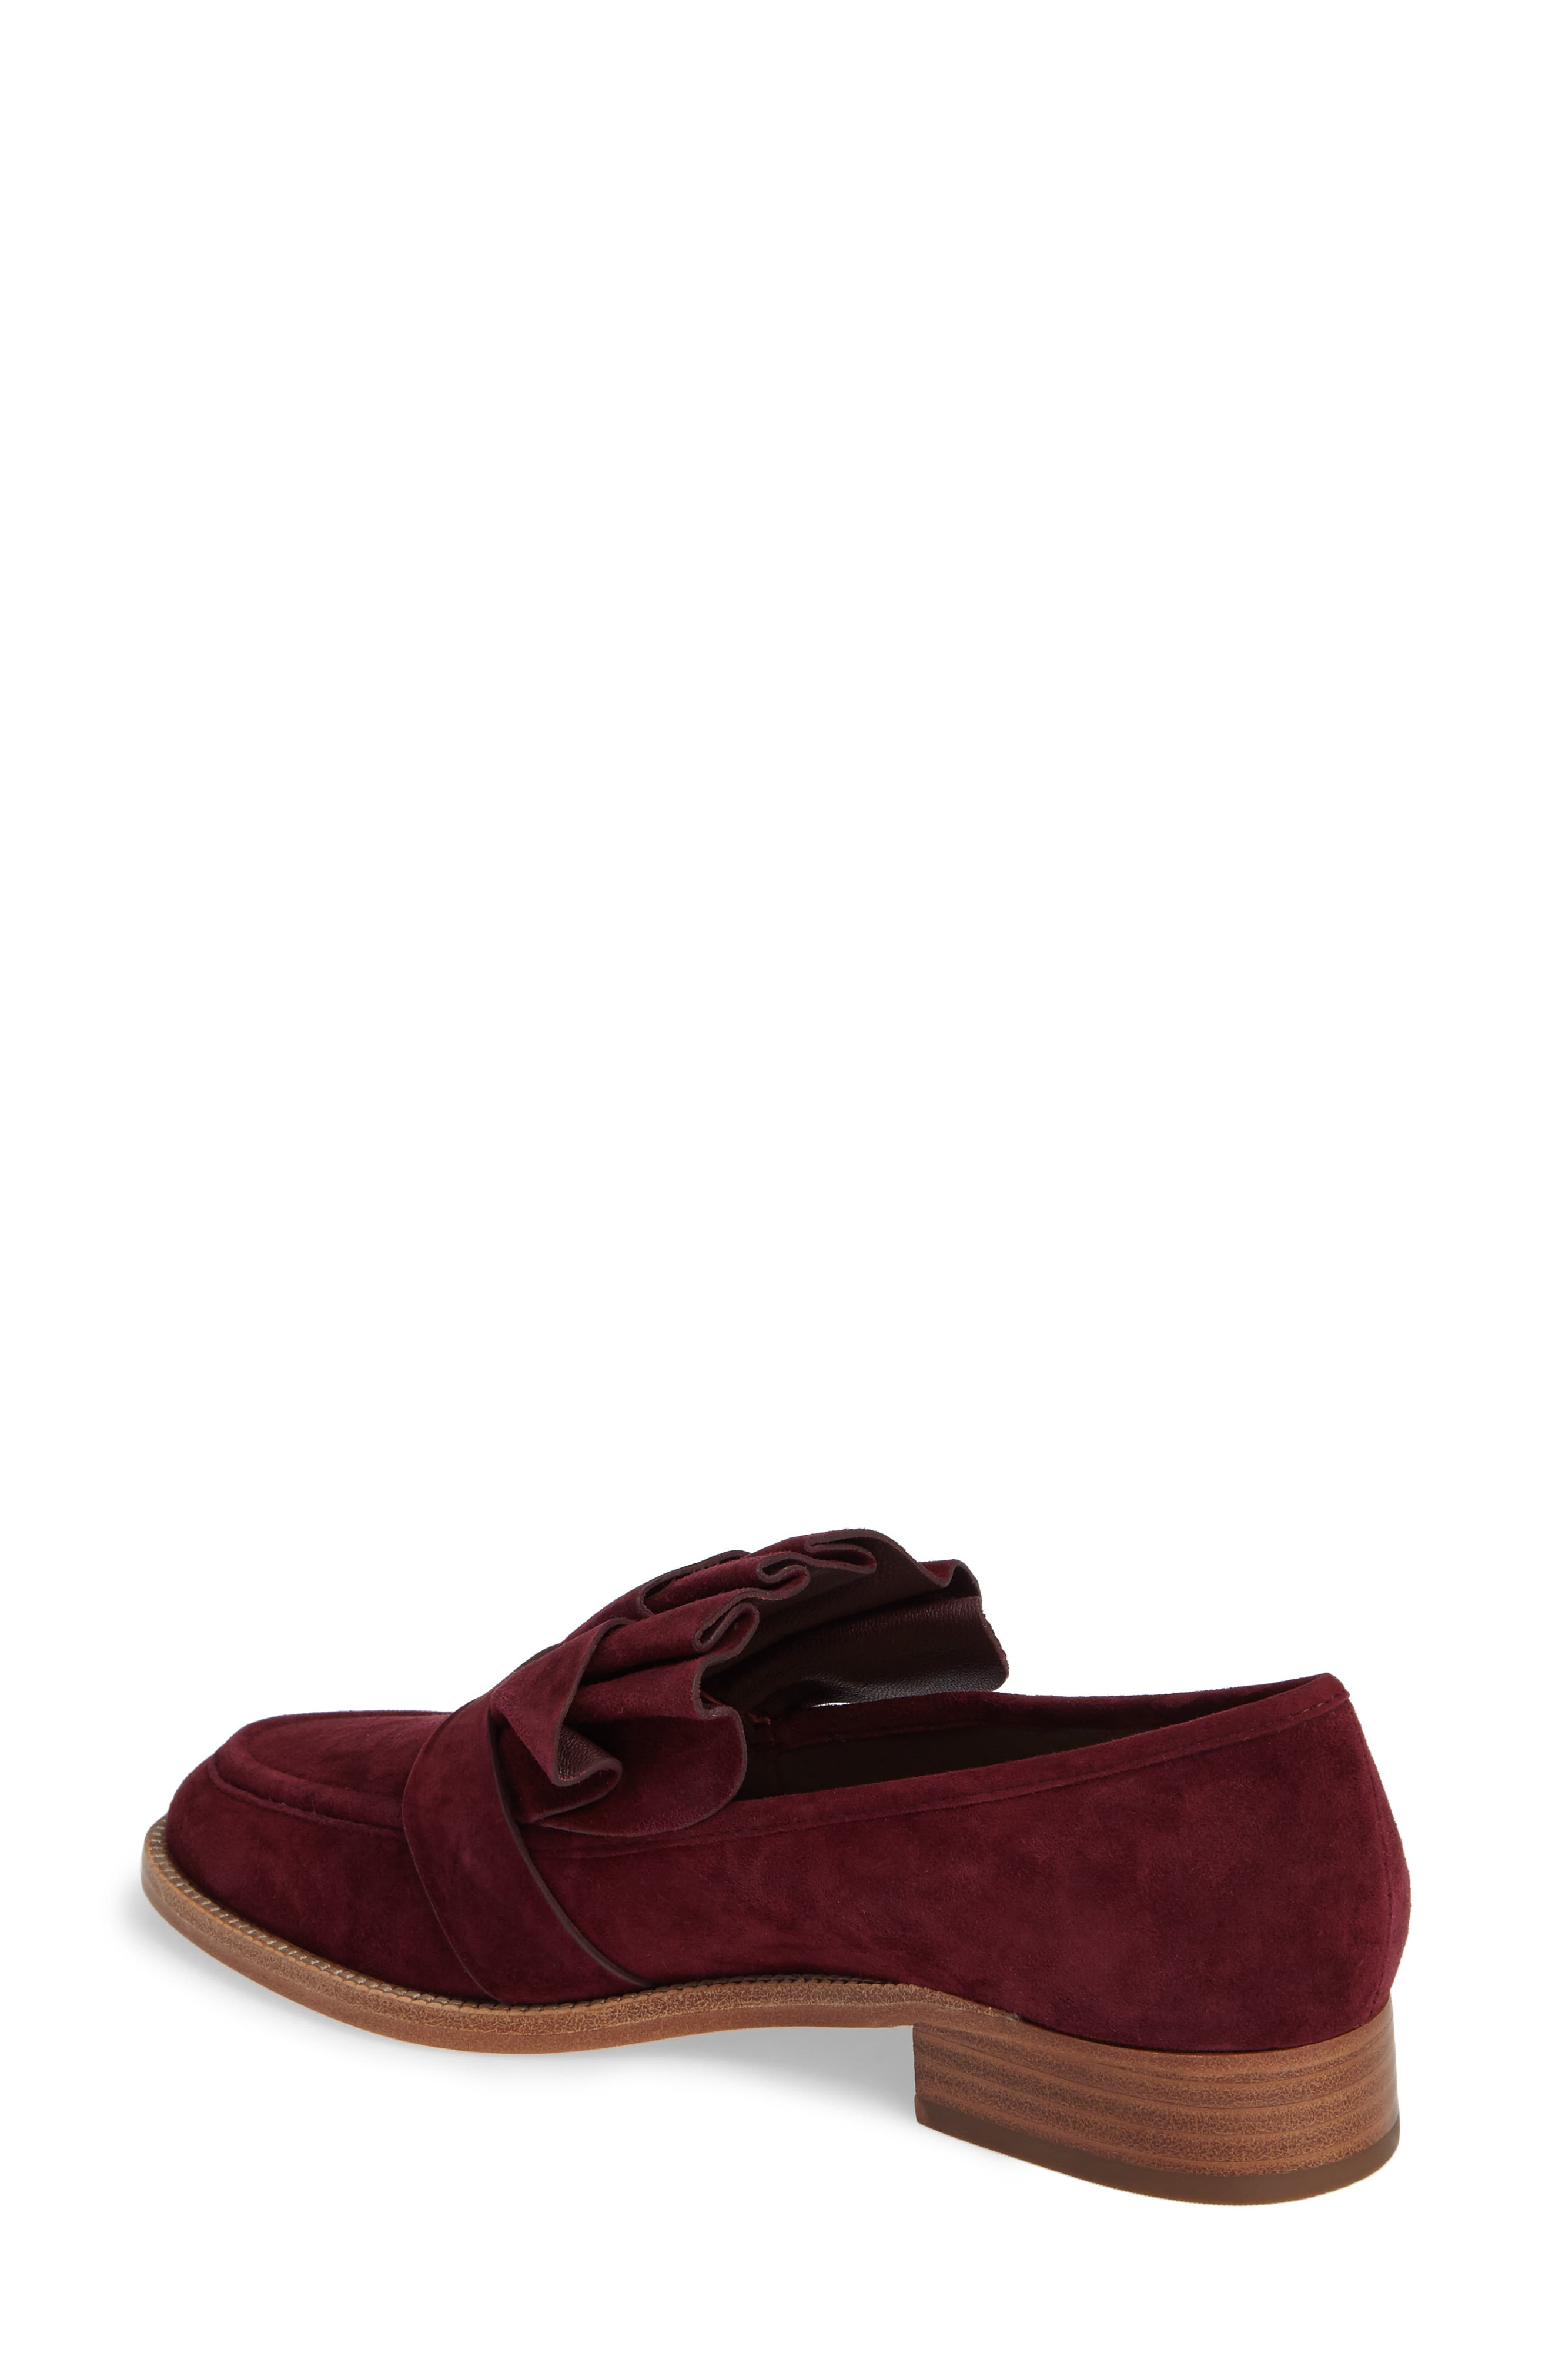 Tenley Ruffled Loafer,                             Alternate thumbnail 2, color,                             Merlot Suede